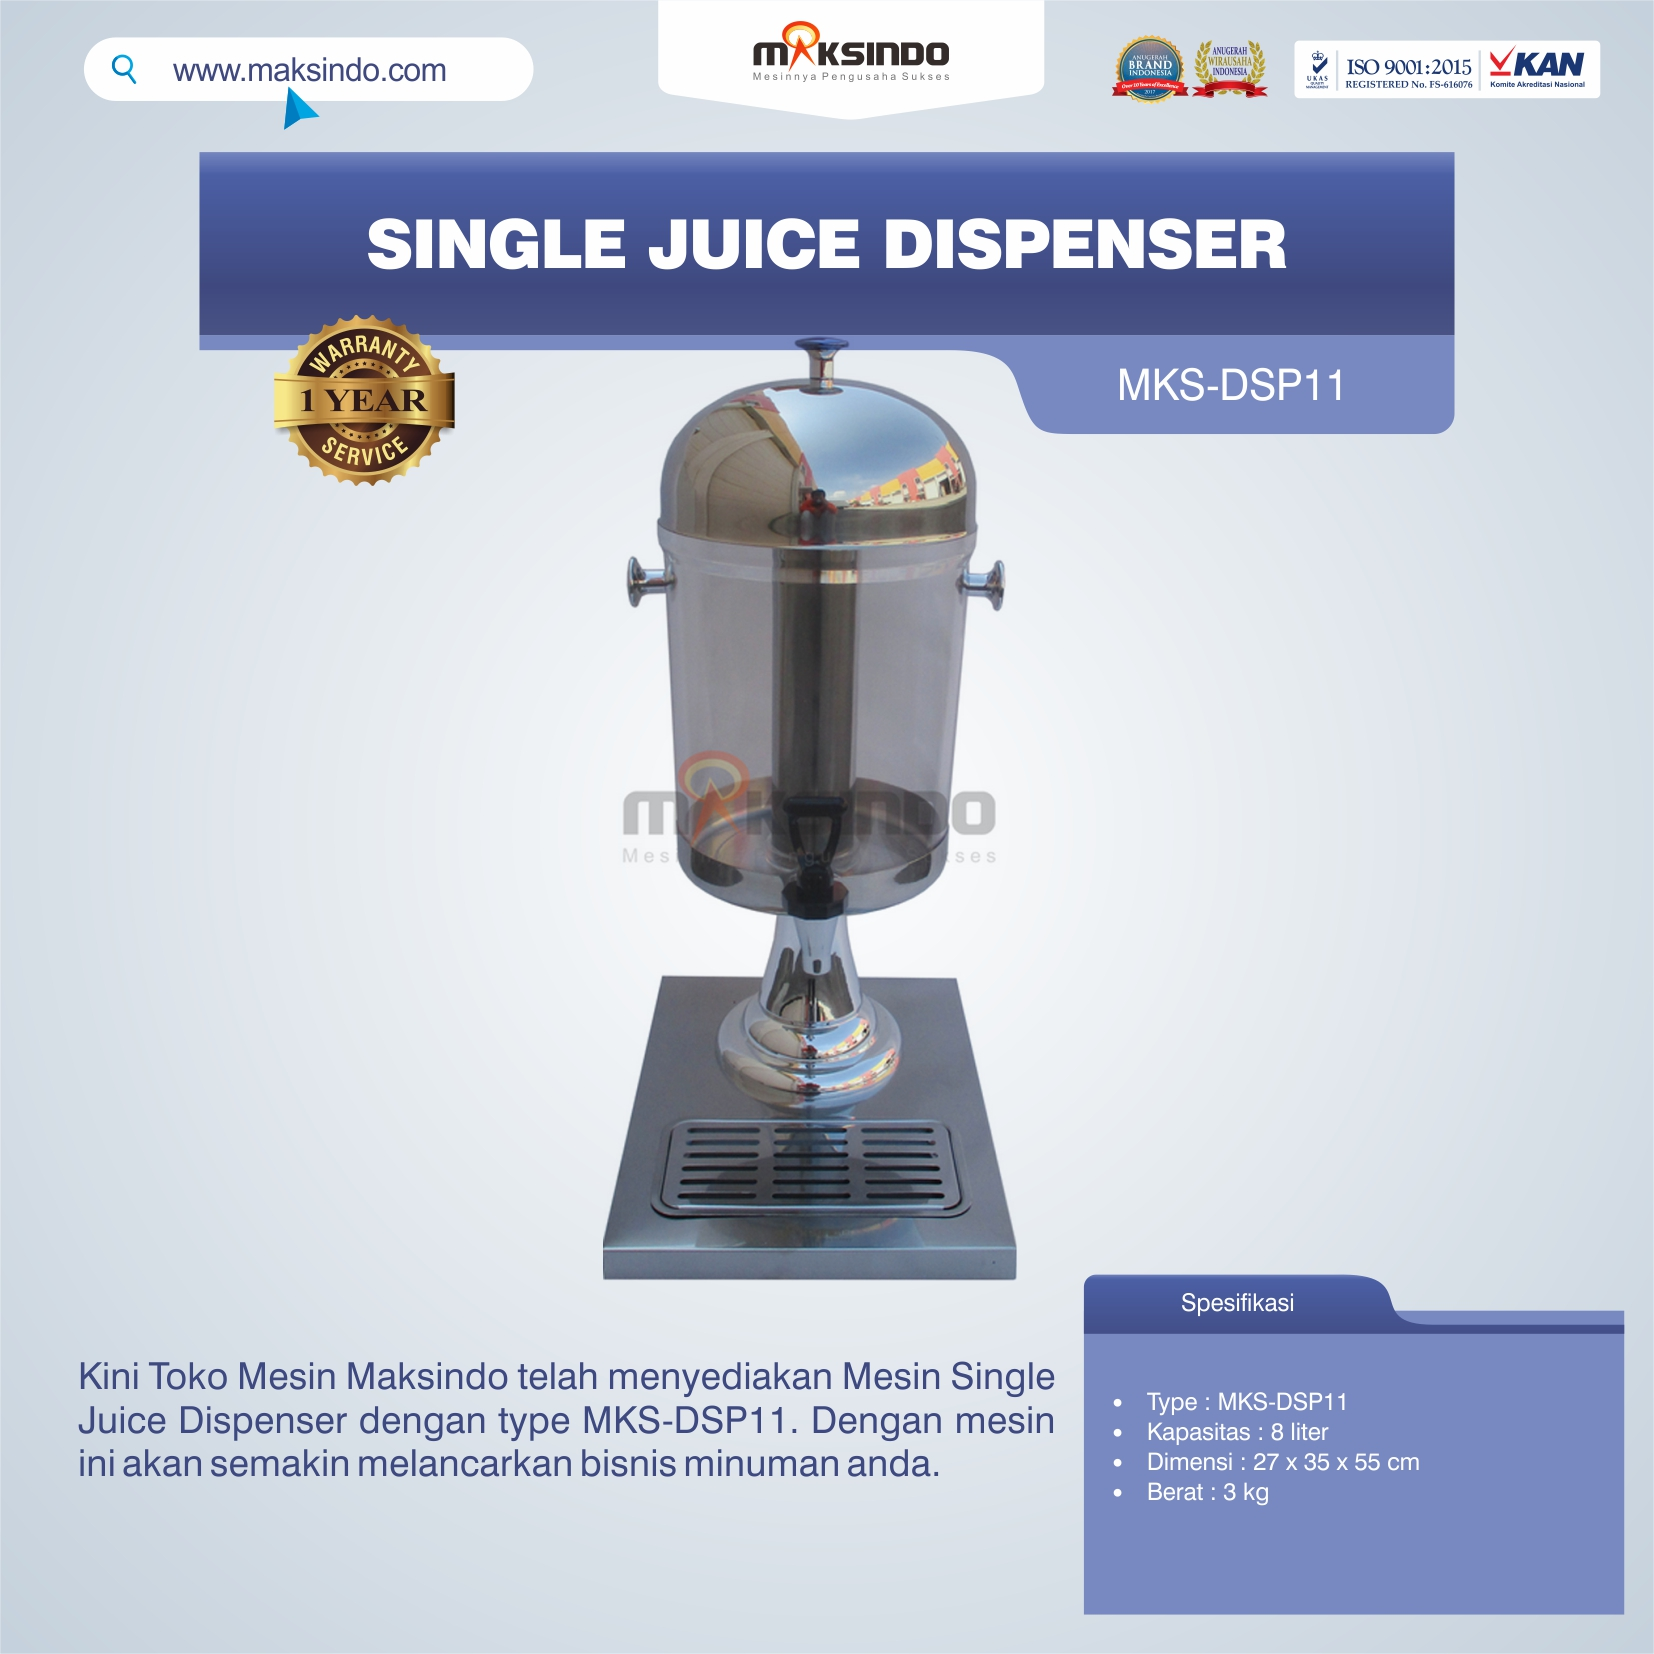 Jual Single Juice Dispenser MKS-DSP11 di Pekanbaru